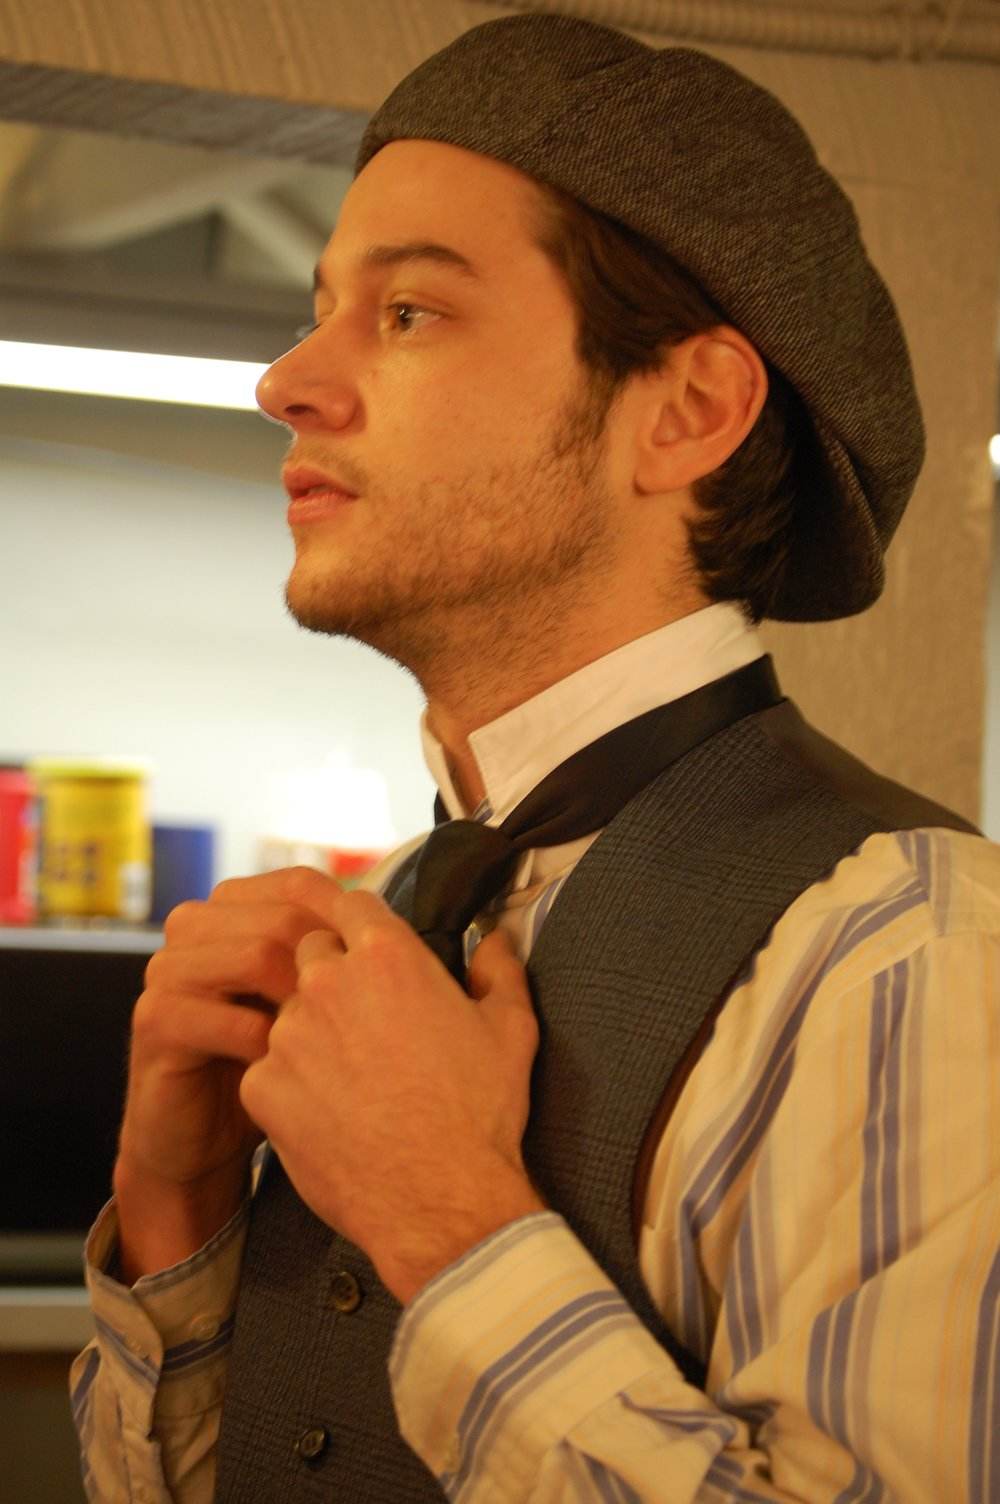 Actor Caleb Neet backstage during Lascaux Entertainment's 2011 production of  The Elephant Man , directed by John Drouillard.  Photo by Nirvana Kowlessar.